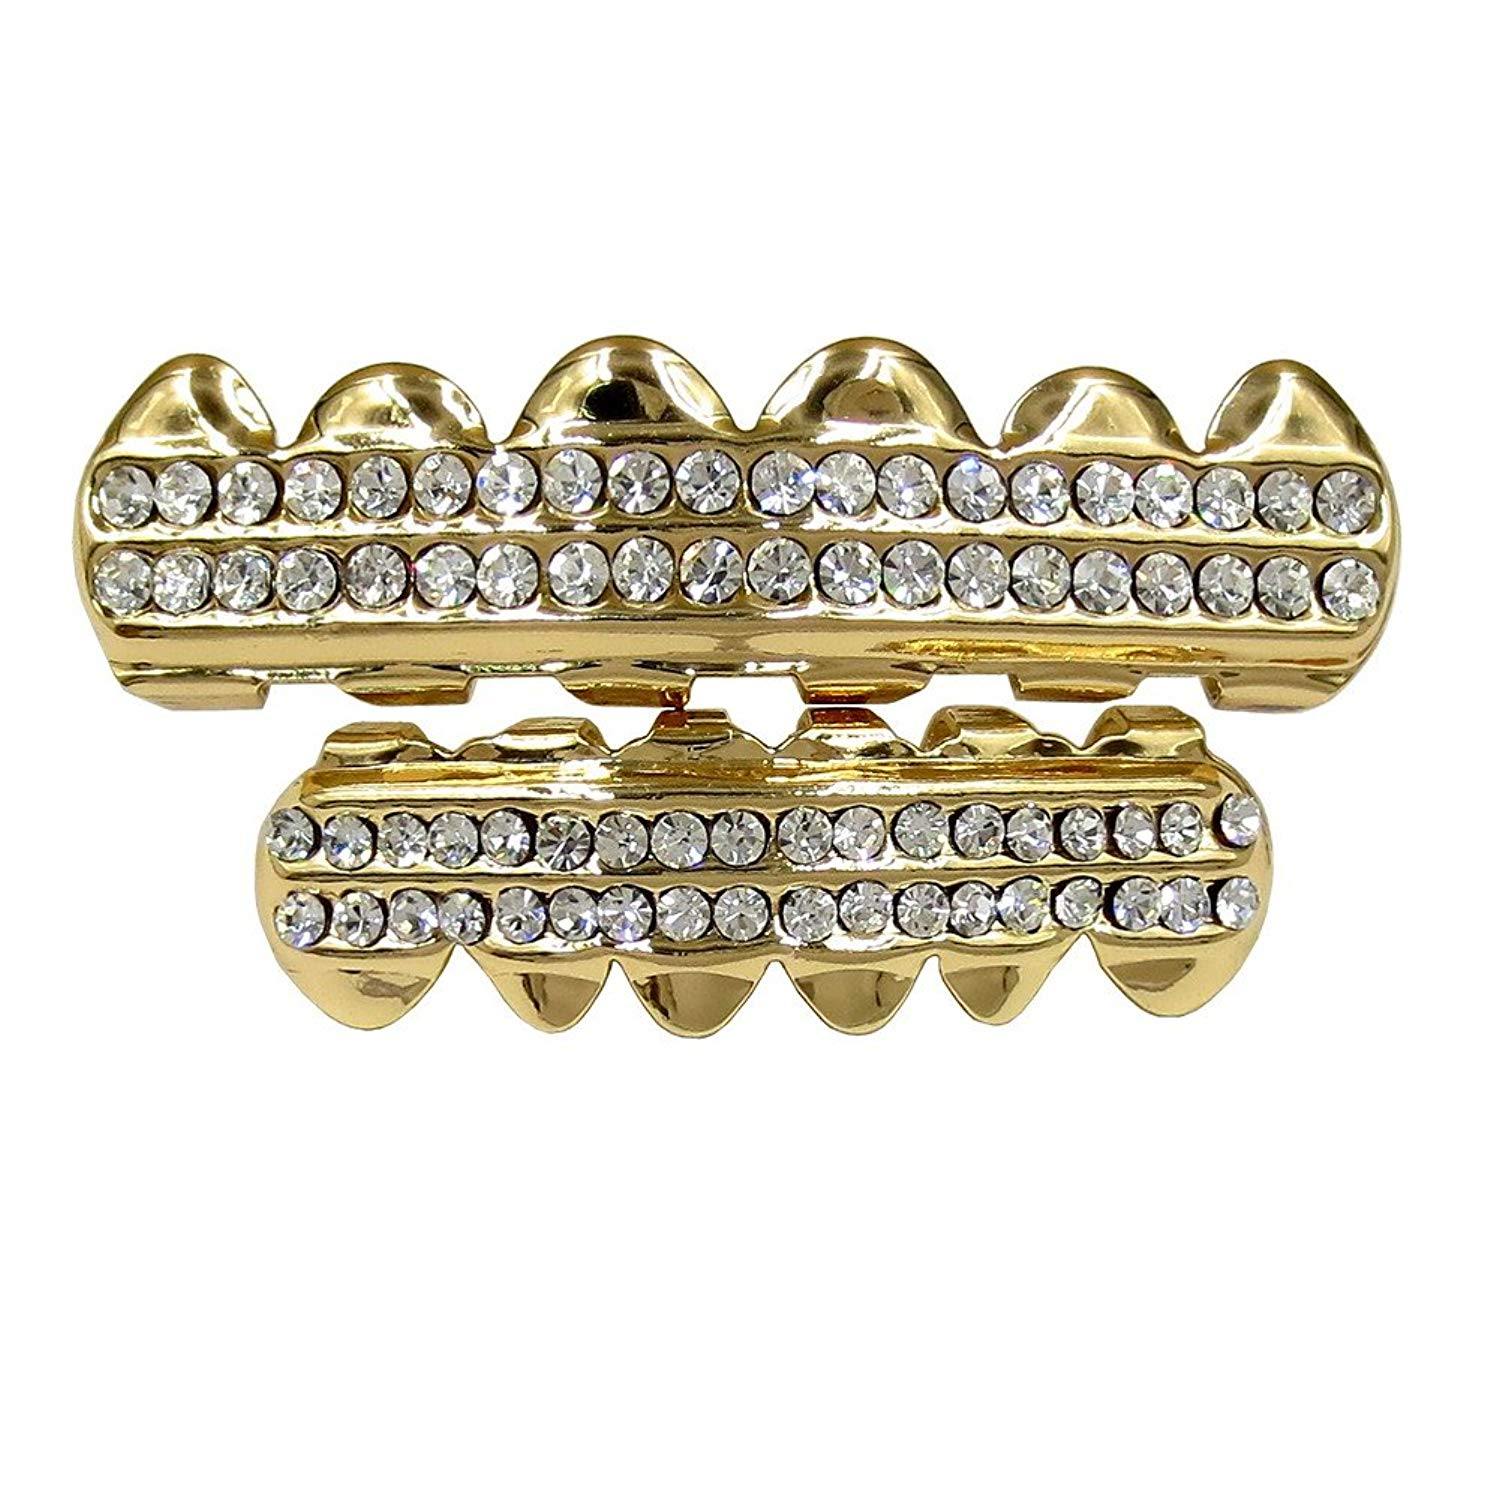 Buy Fun Bling Bling Grillz - Set of 10 Gold and Silver